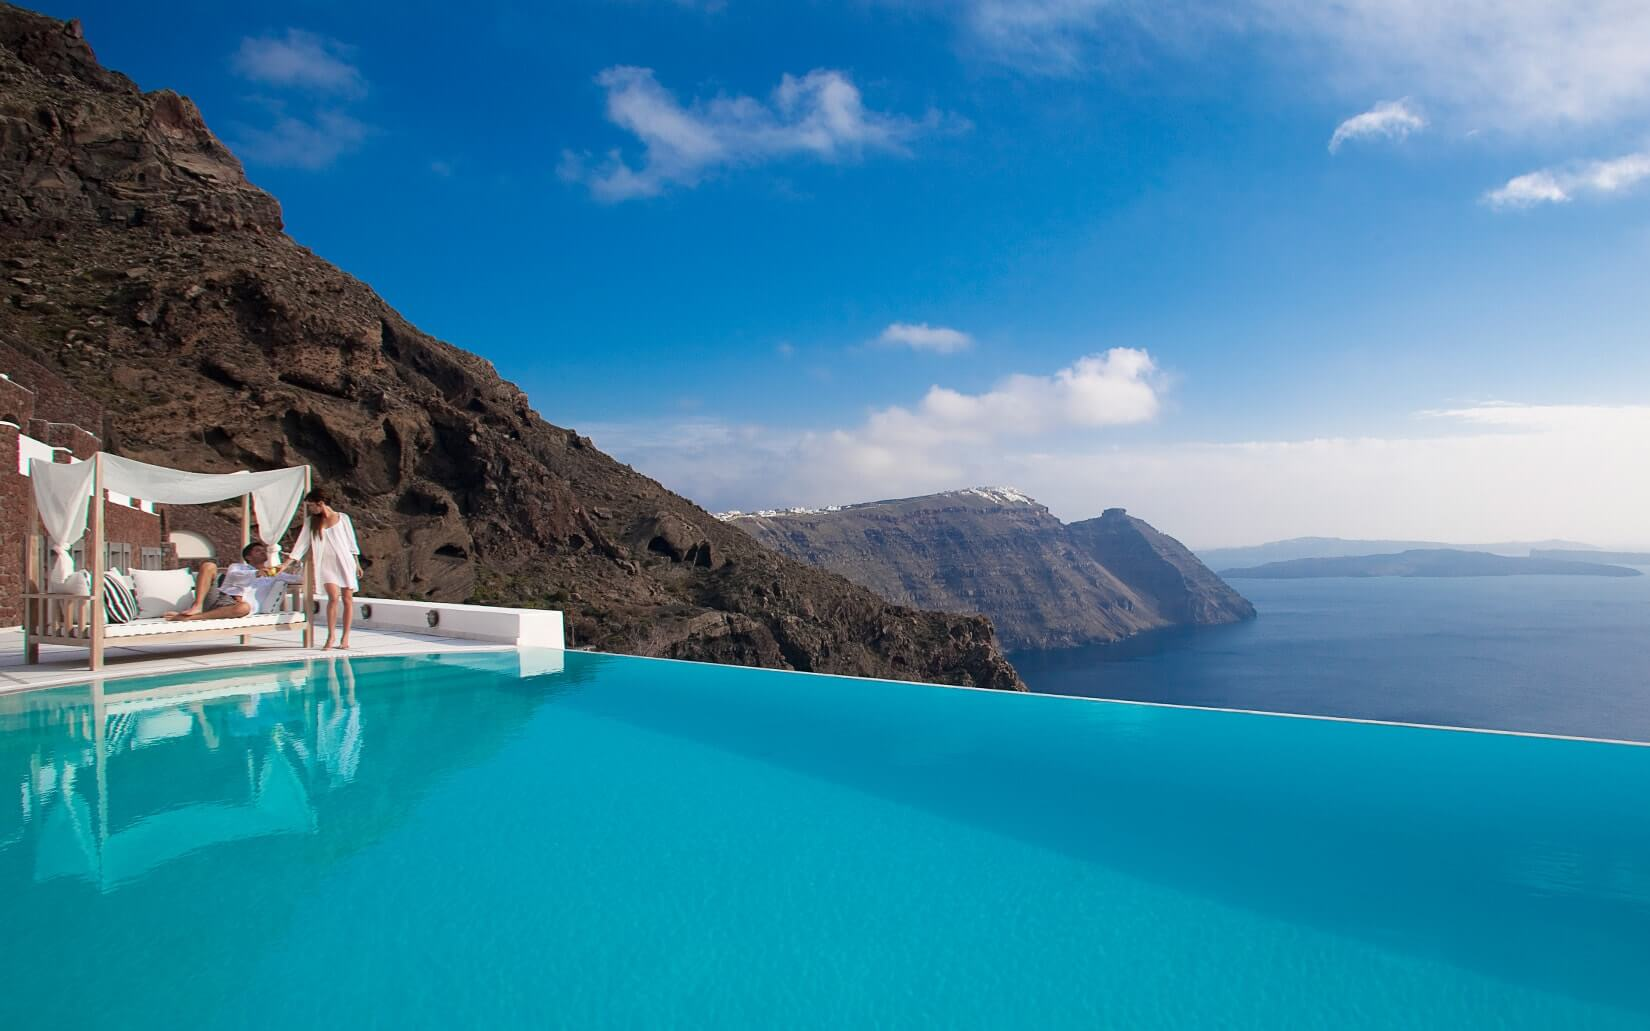 San antonio santorini hotel luxury hotel in santorini for Hotels santorin